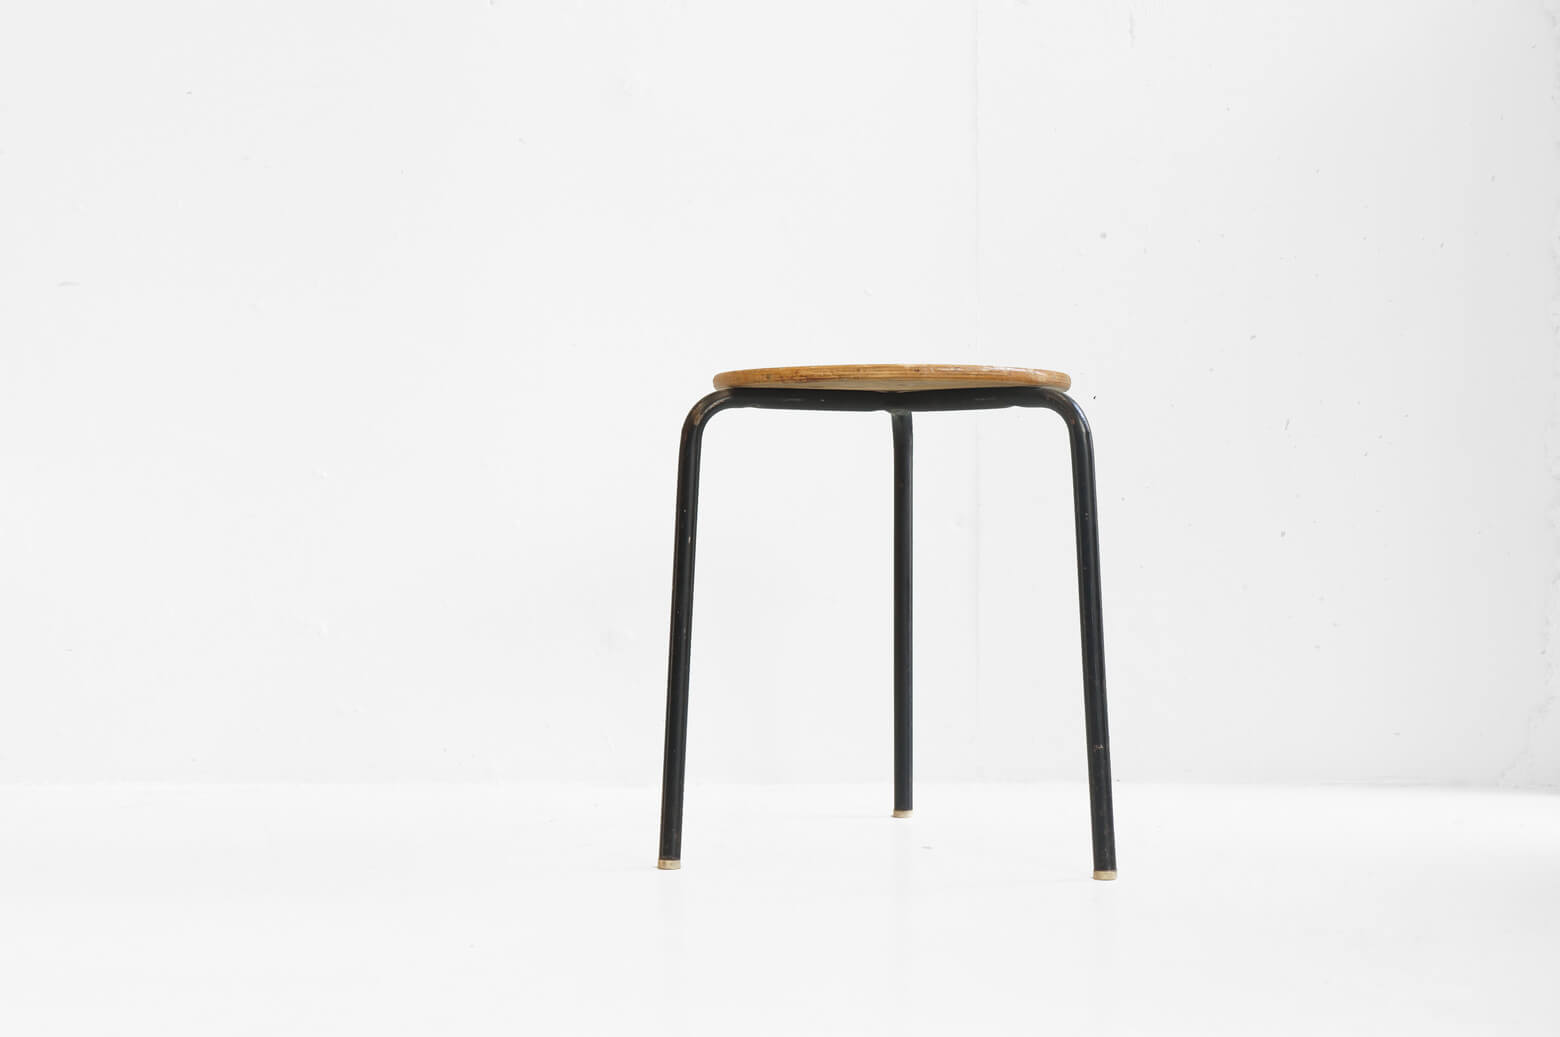 Vintage Stool Finland Import/ヴィンテージ スツール フィンランド インポート